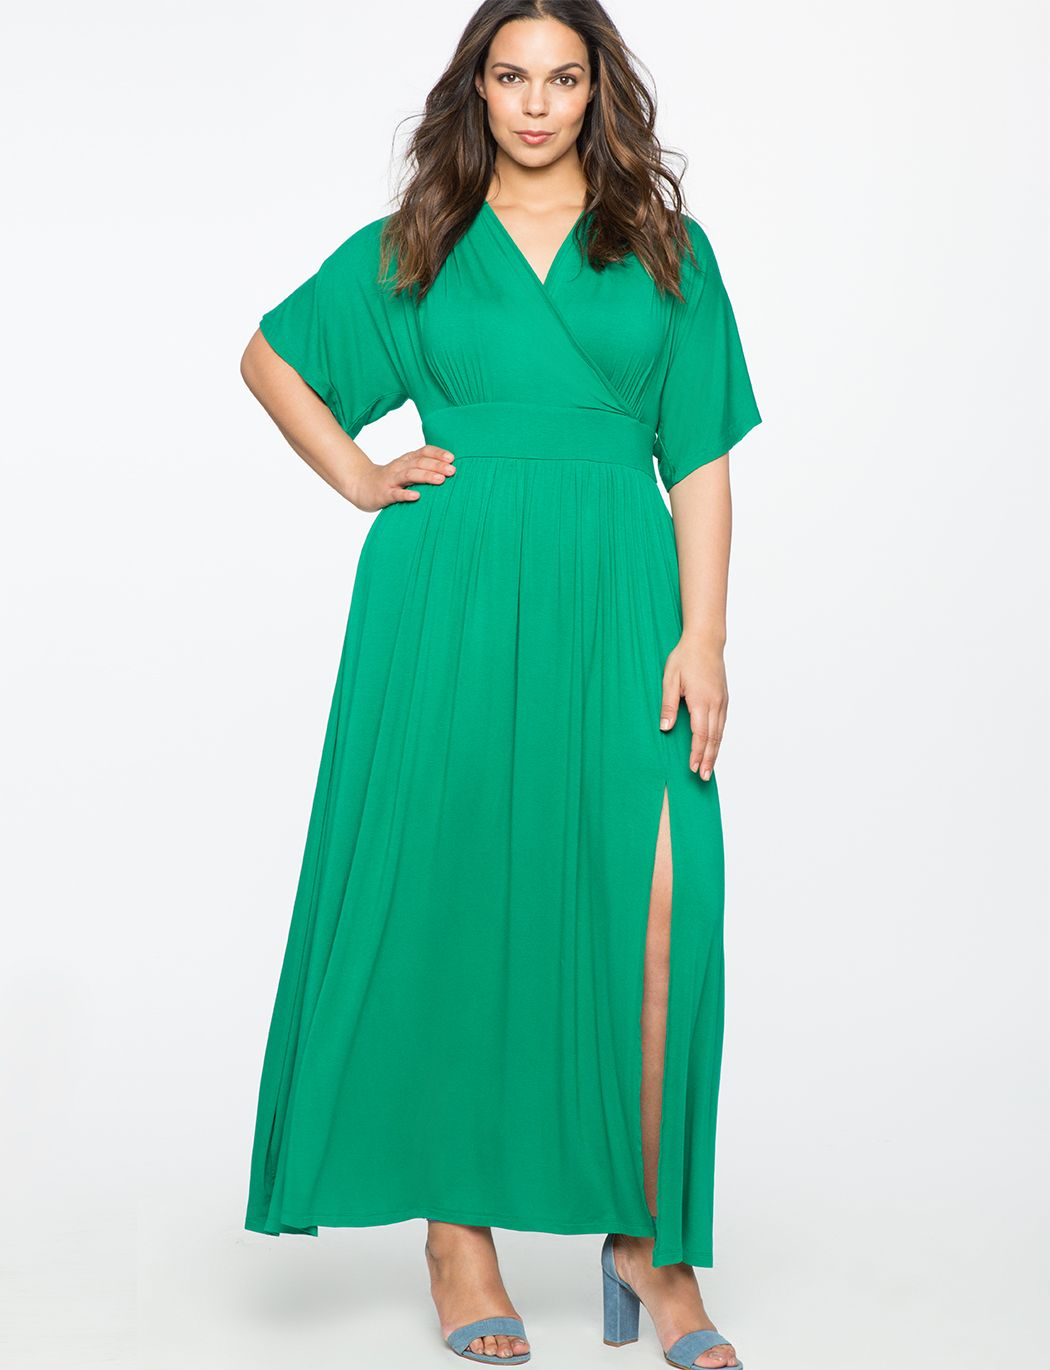 Kimono Maxi Dress Women s Plus Size Dresses